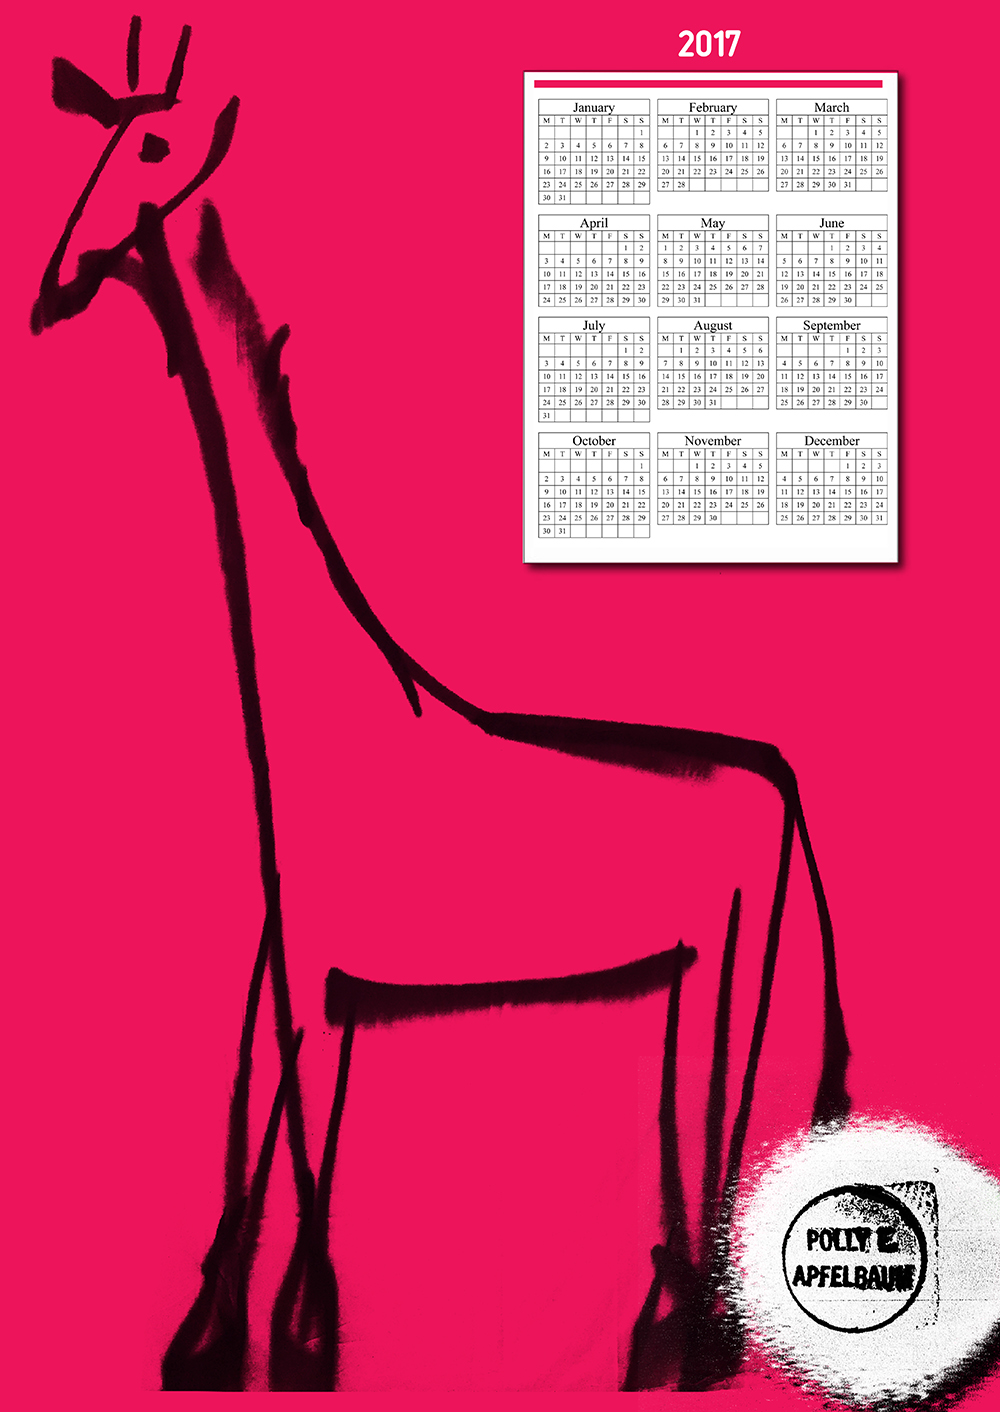 Line drawing of giraffe on pink background with calendar in top right-hand corner.